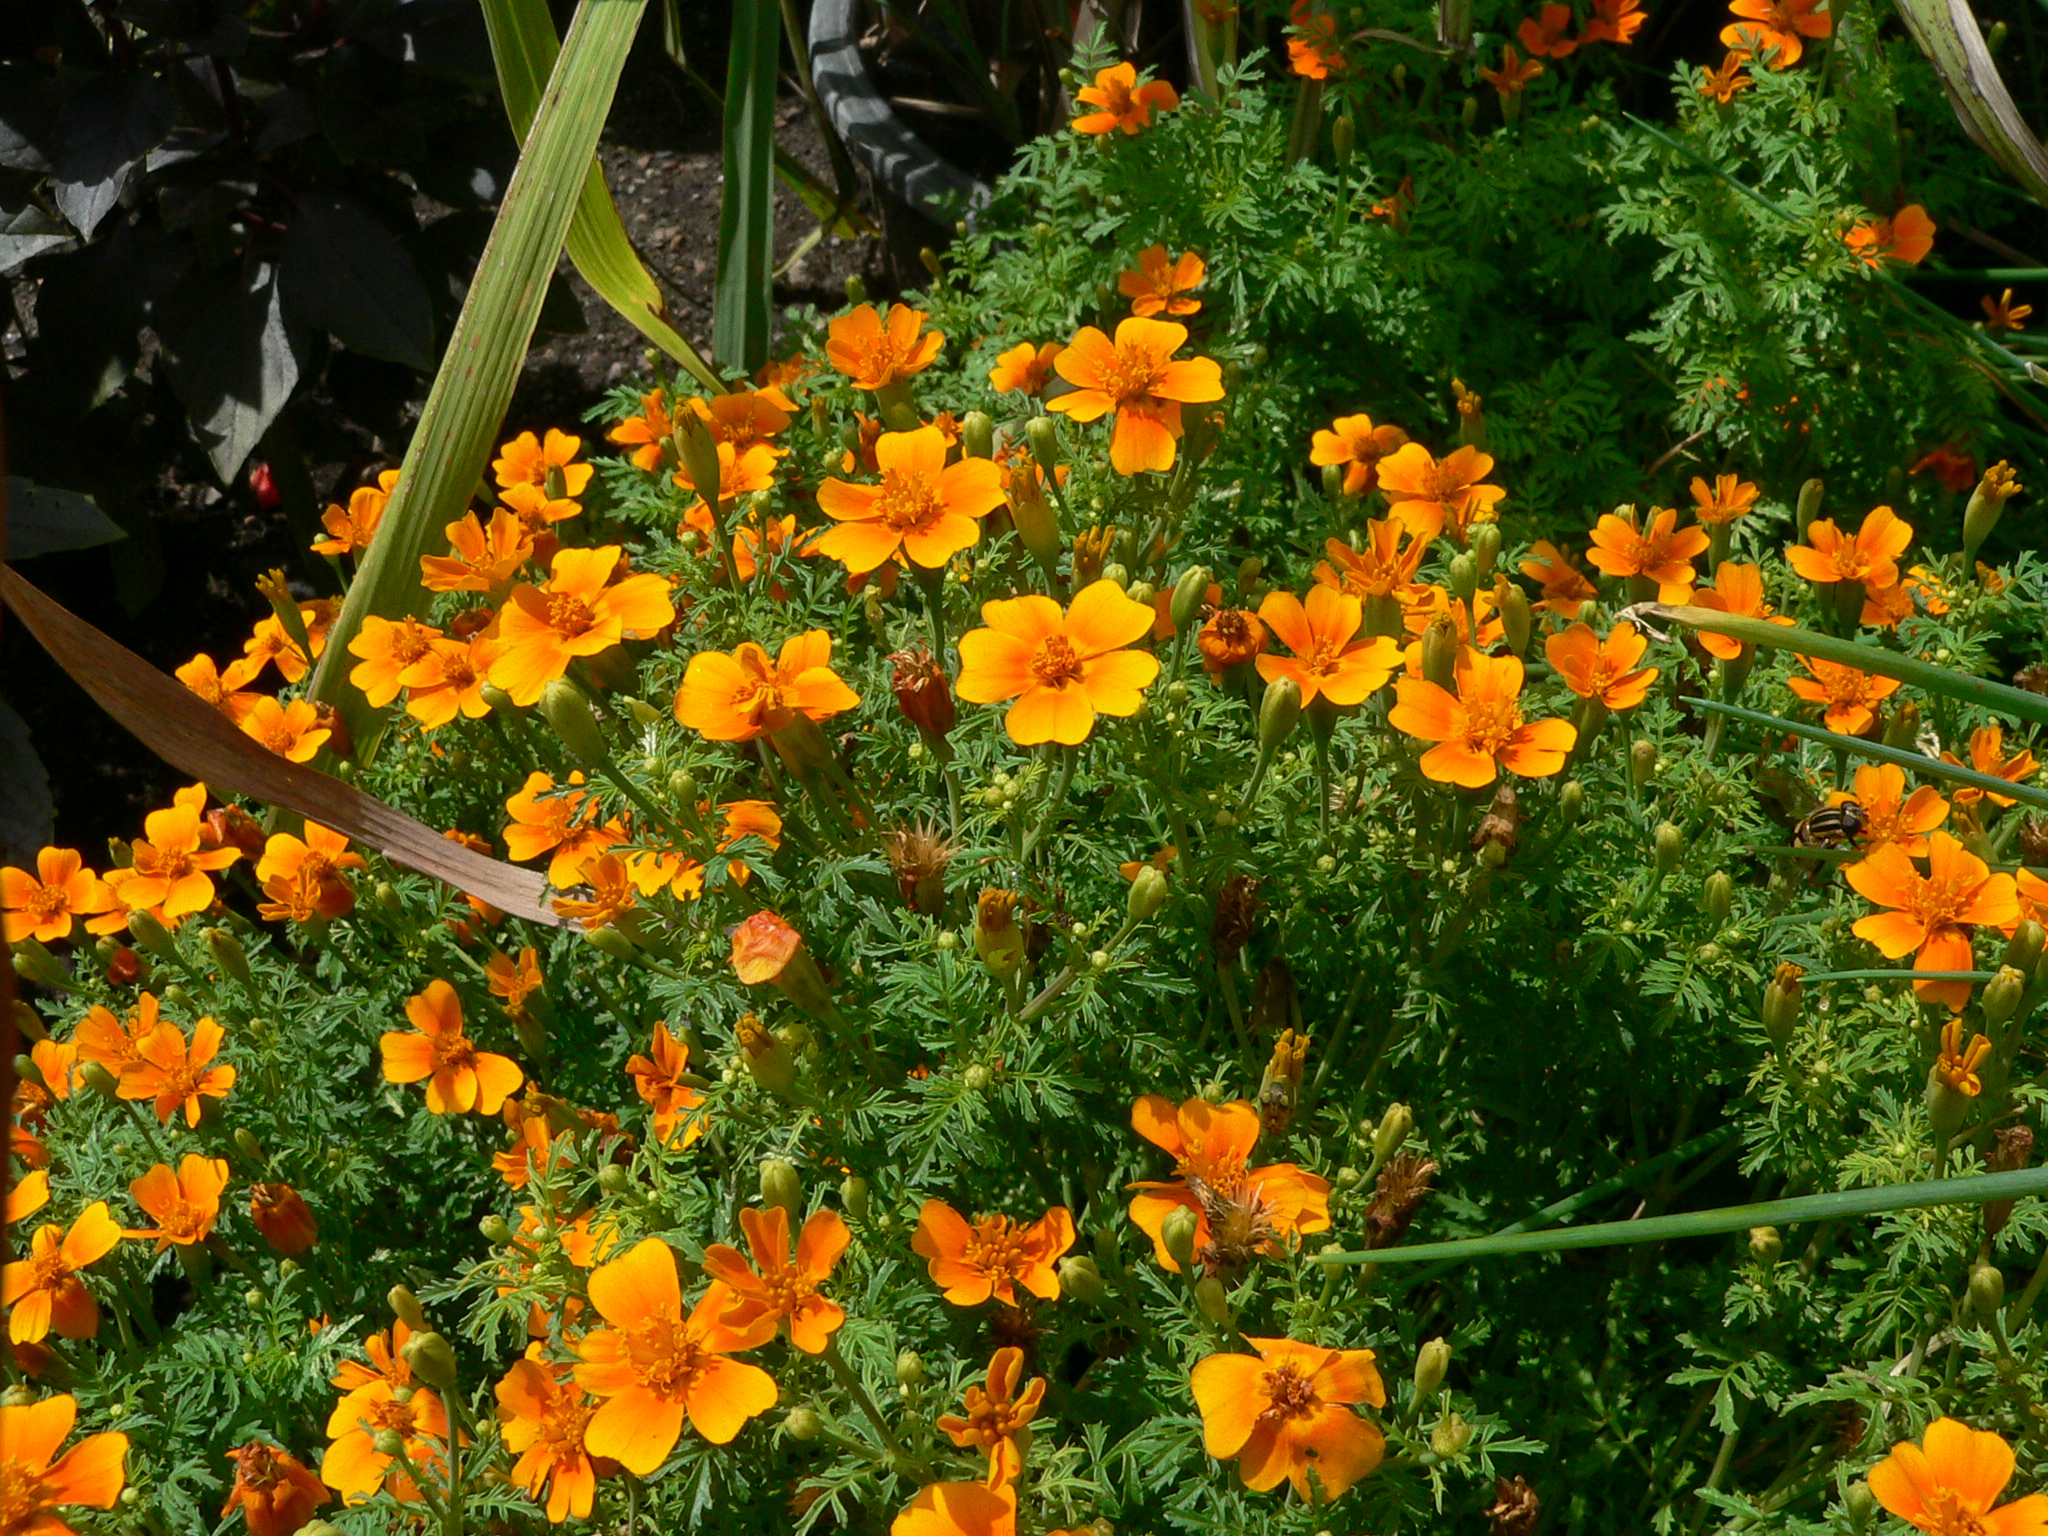 Orange flowers of the gem signet marigold